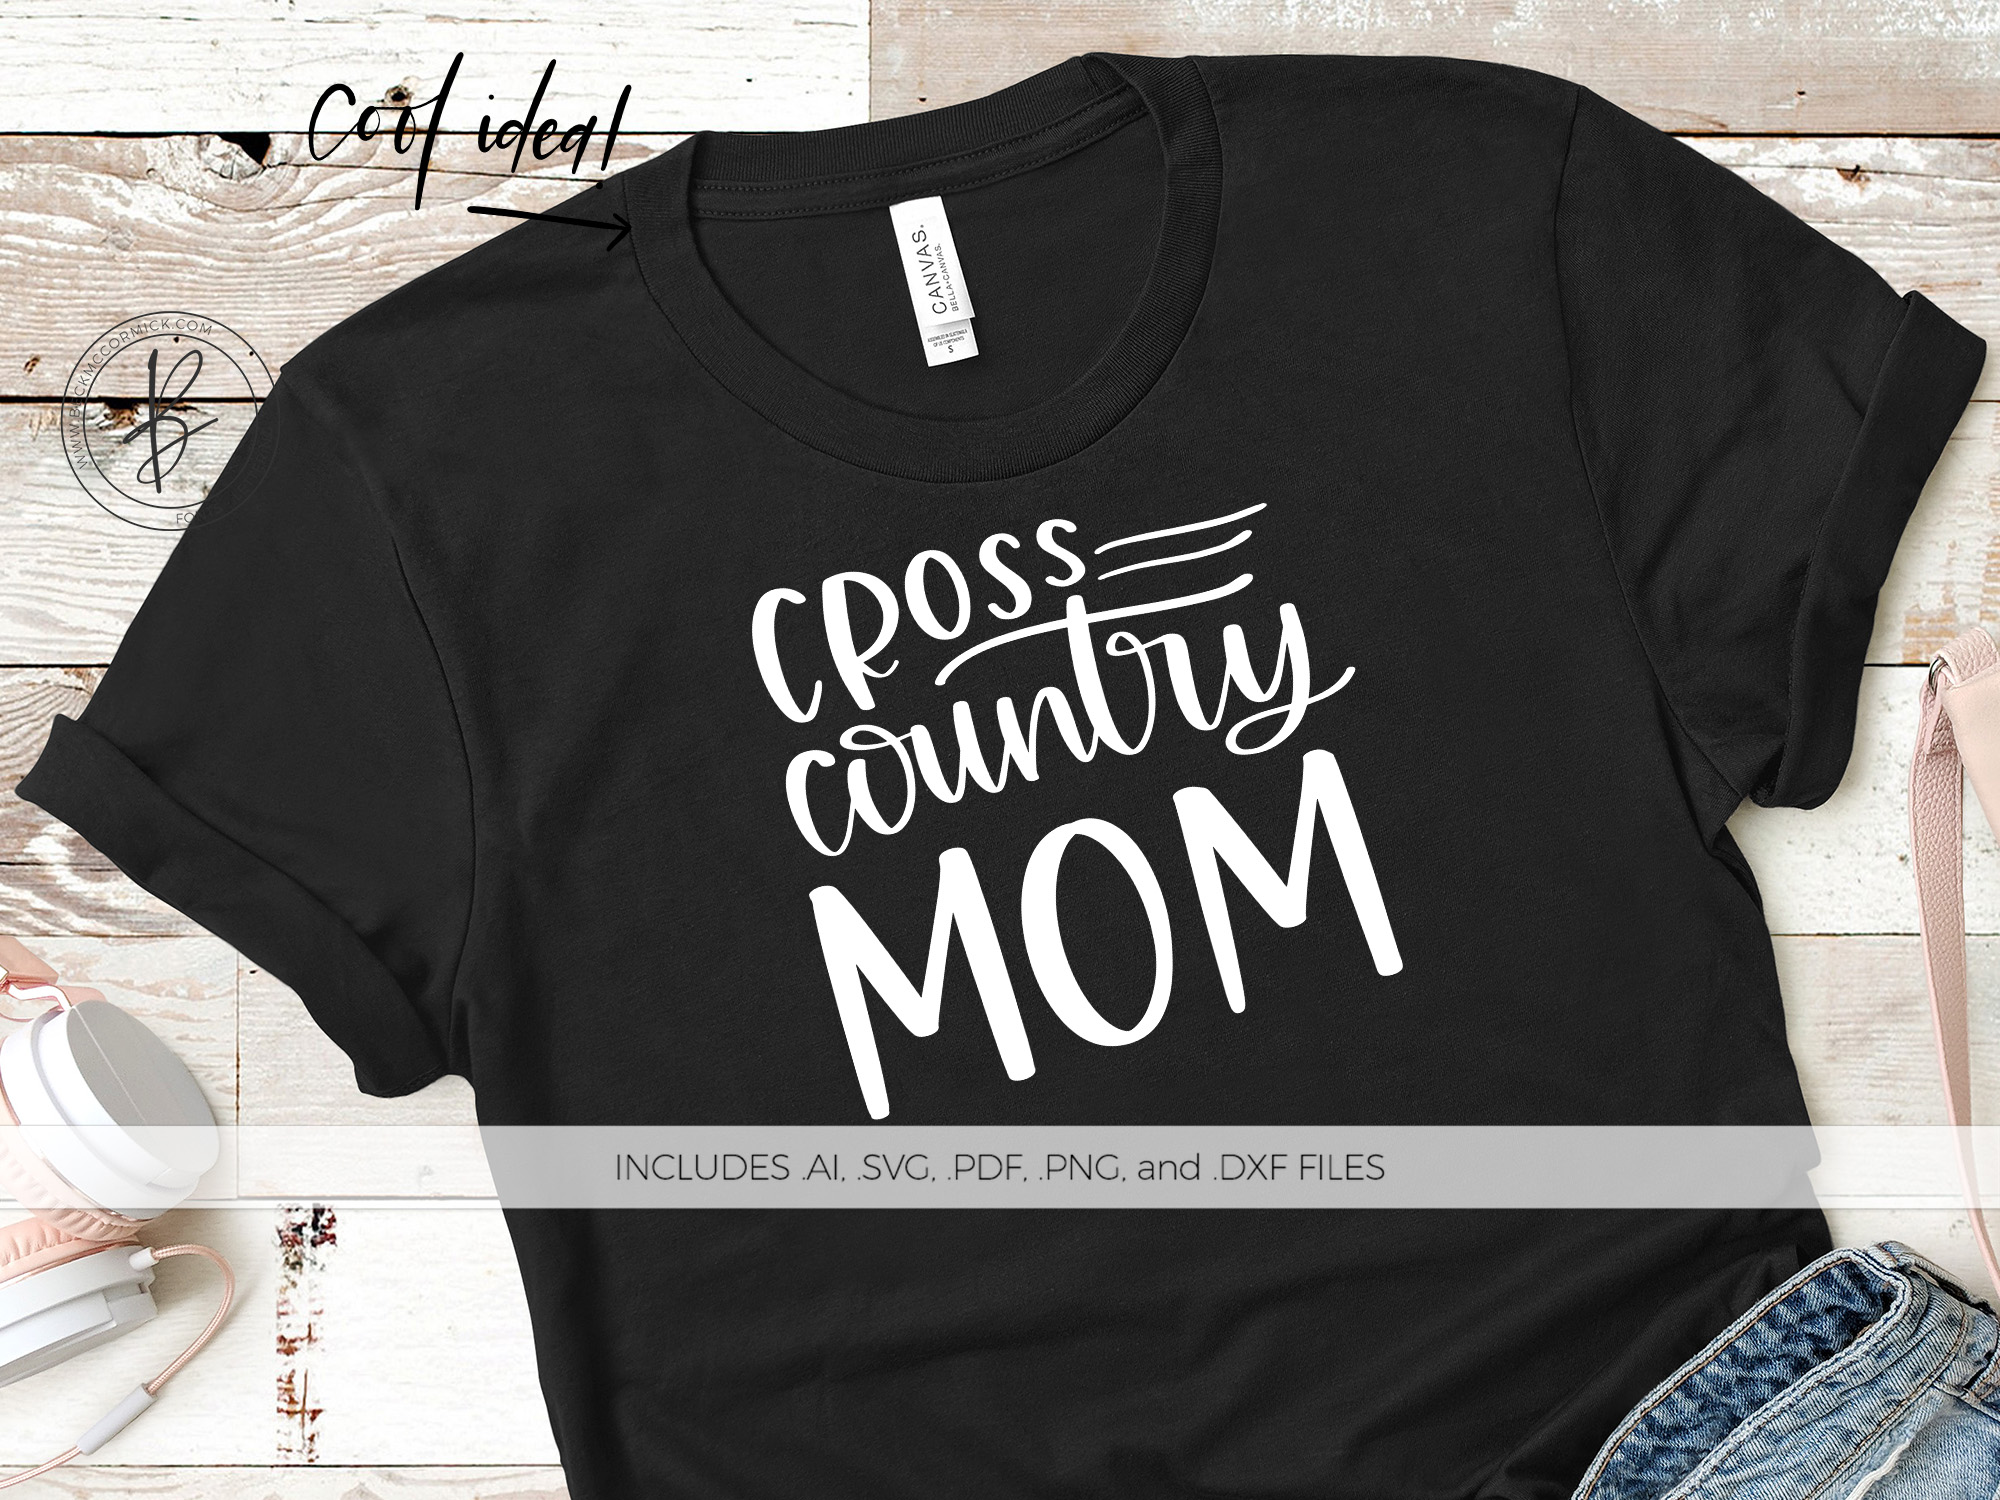 Download Free Cross Country Mom Graphic By Beckmccormick Creative Fabrica for Cricut Explore, Silhouette and other cutting machines.